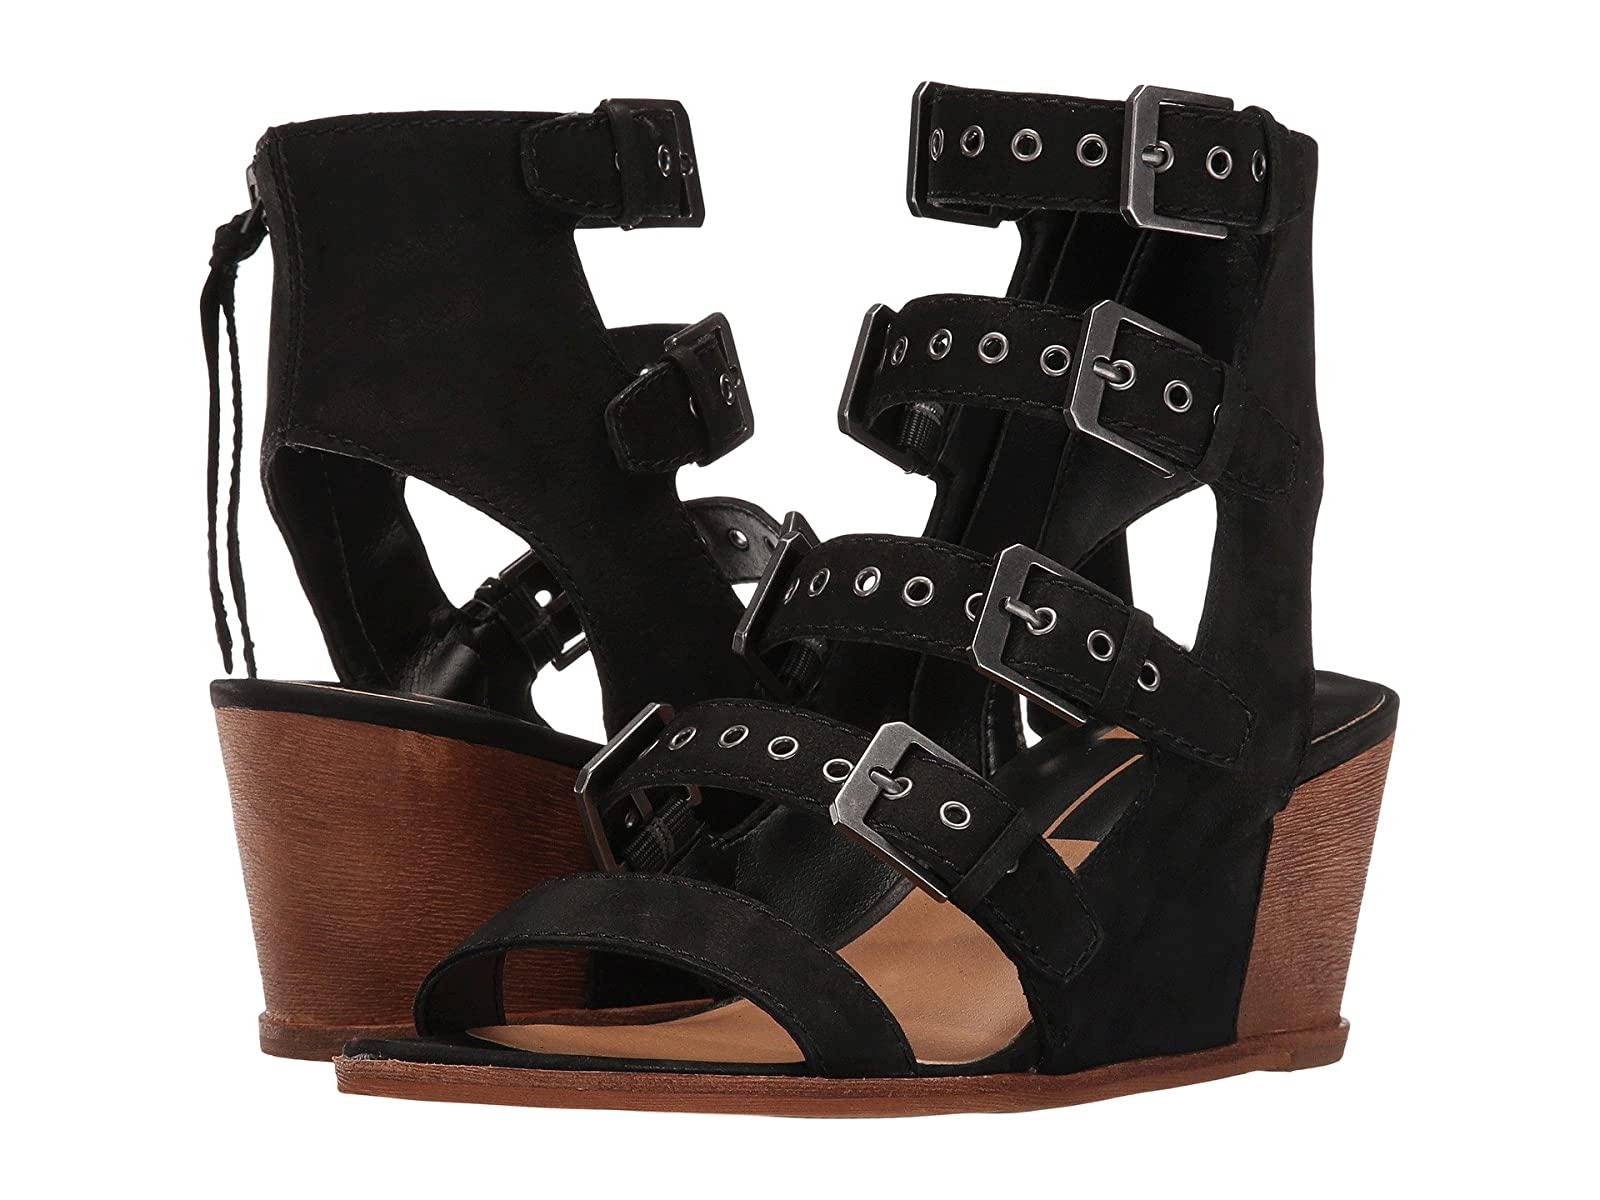 Dolce Vita LakenCheap and distinctive eye-catching shoes